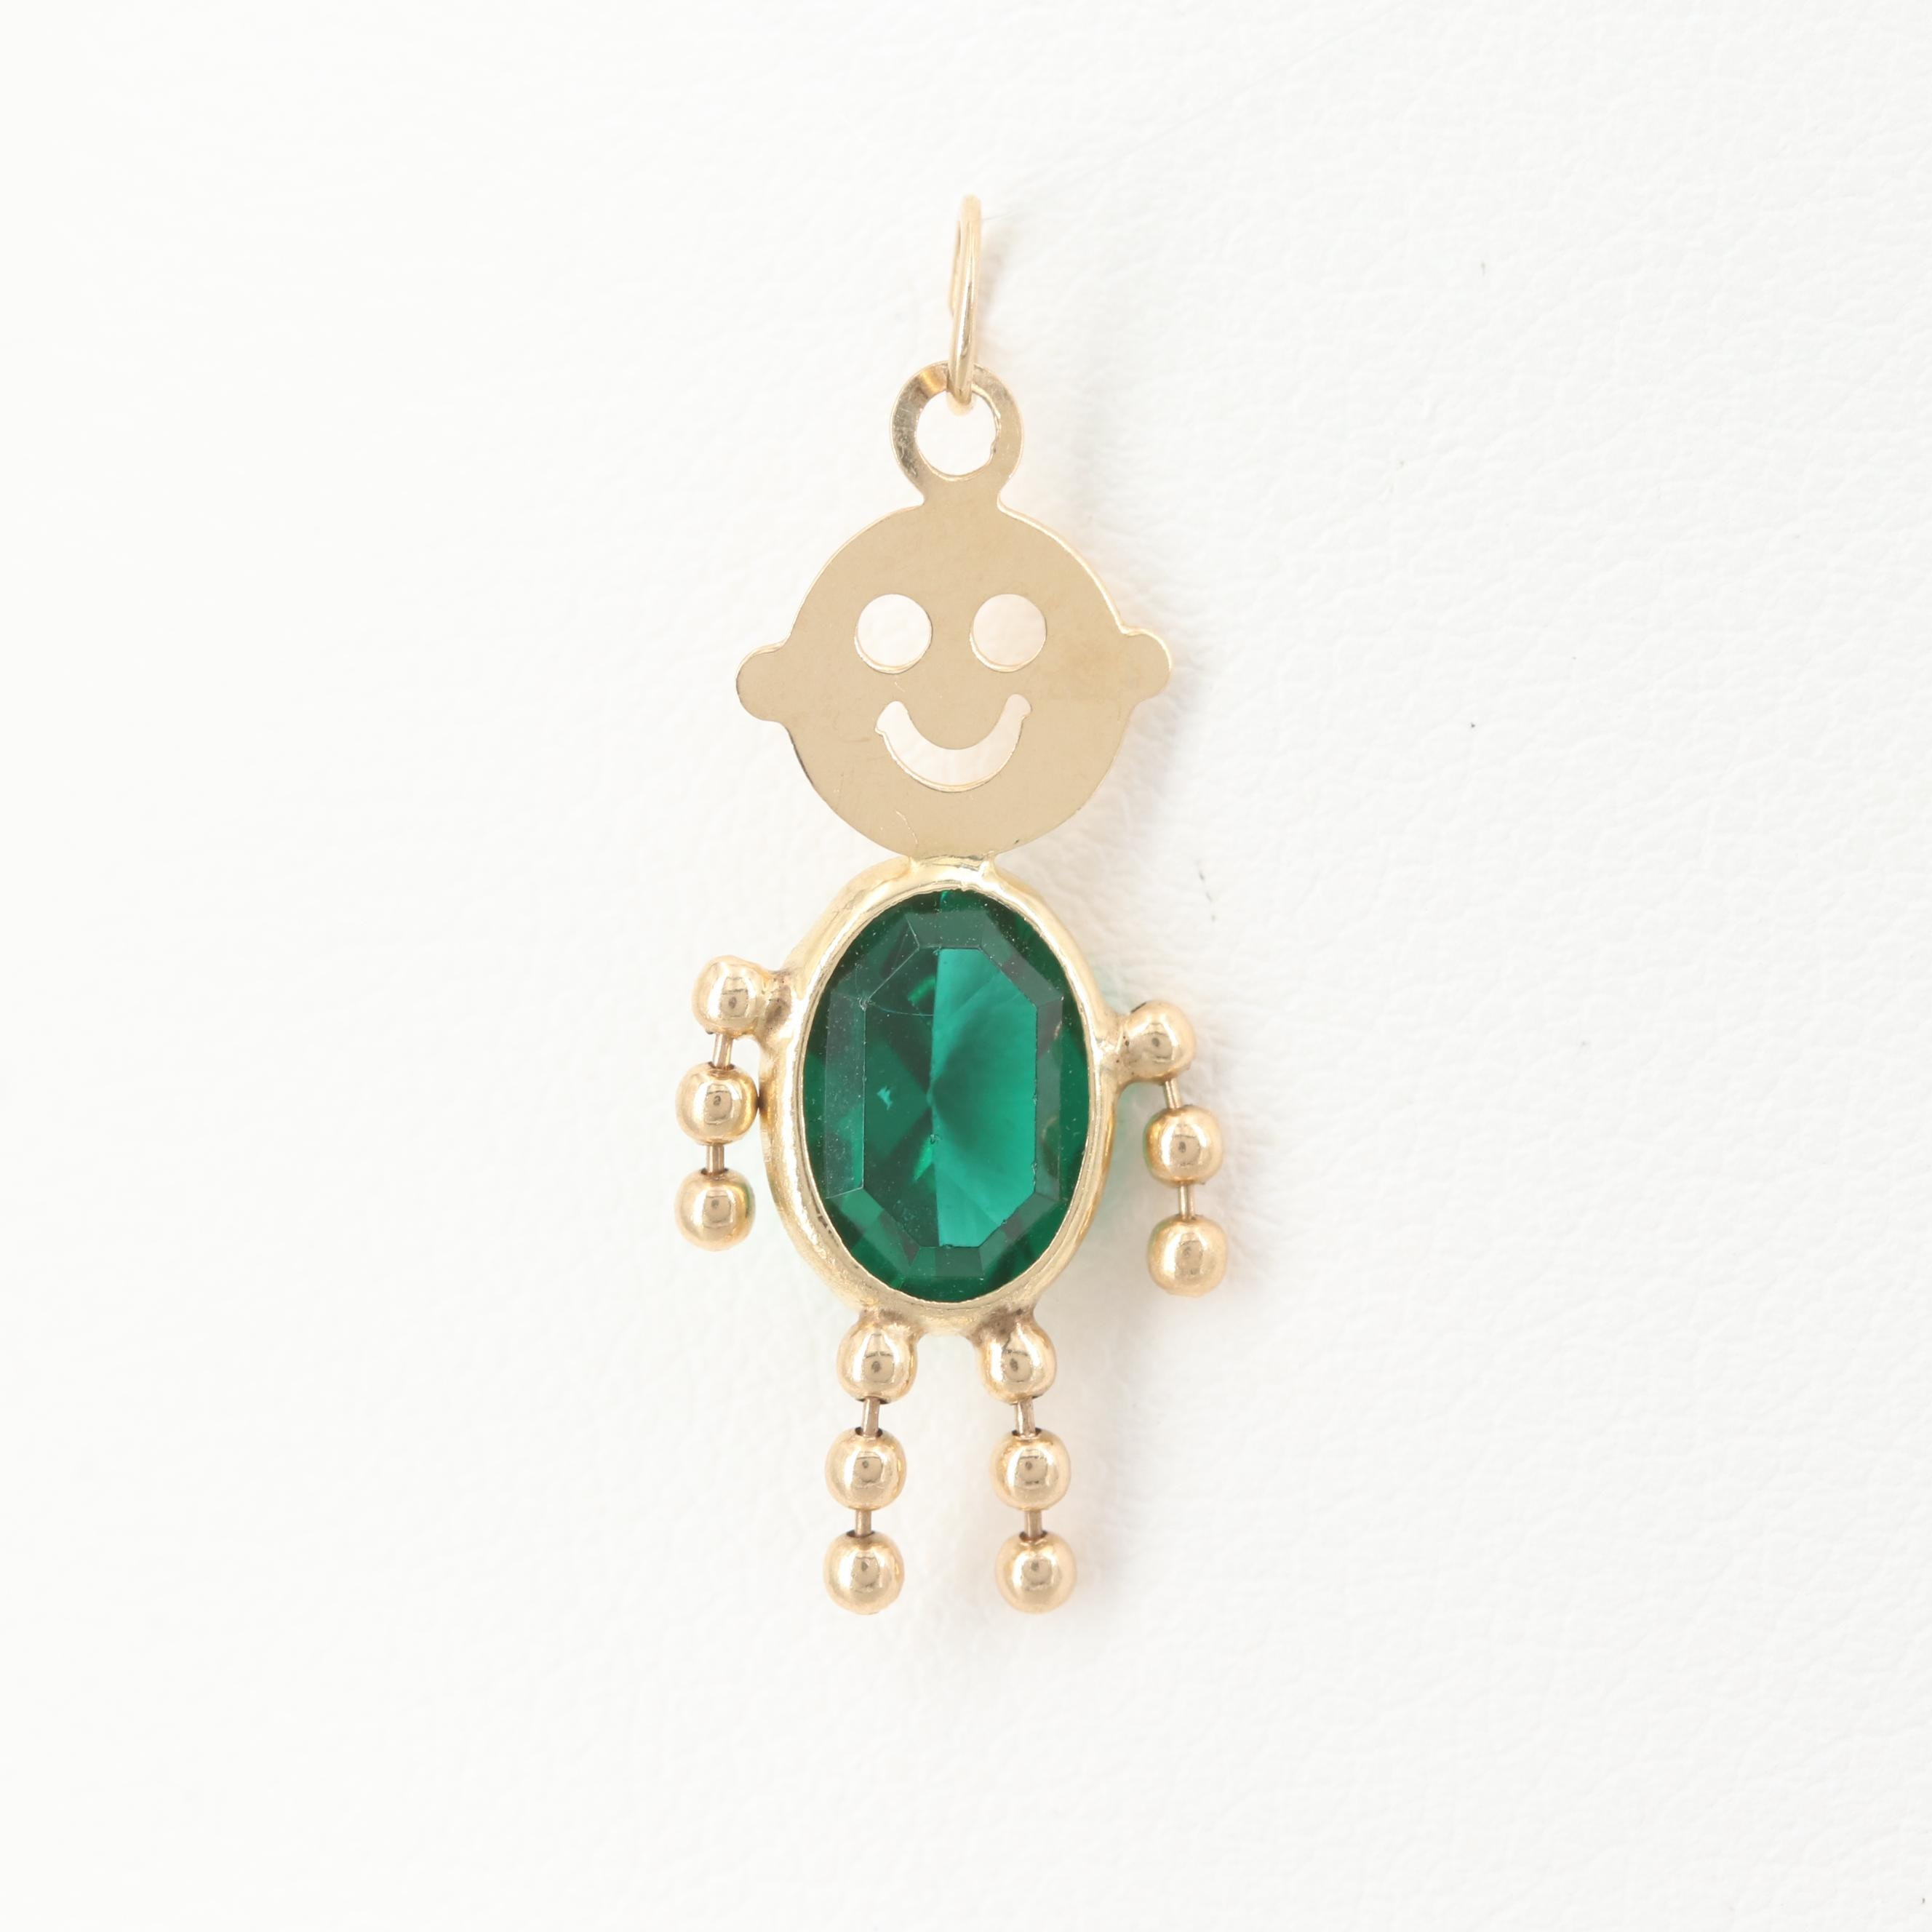 14K Yellow Gold Childrens Glass Birthstone Style Pendant